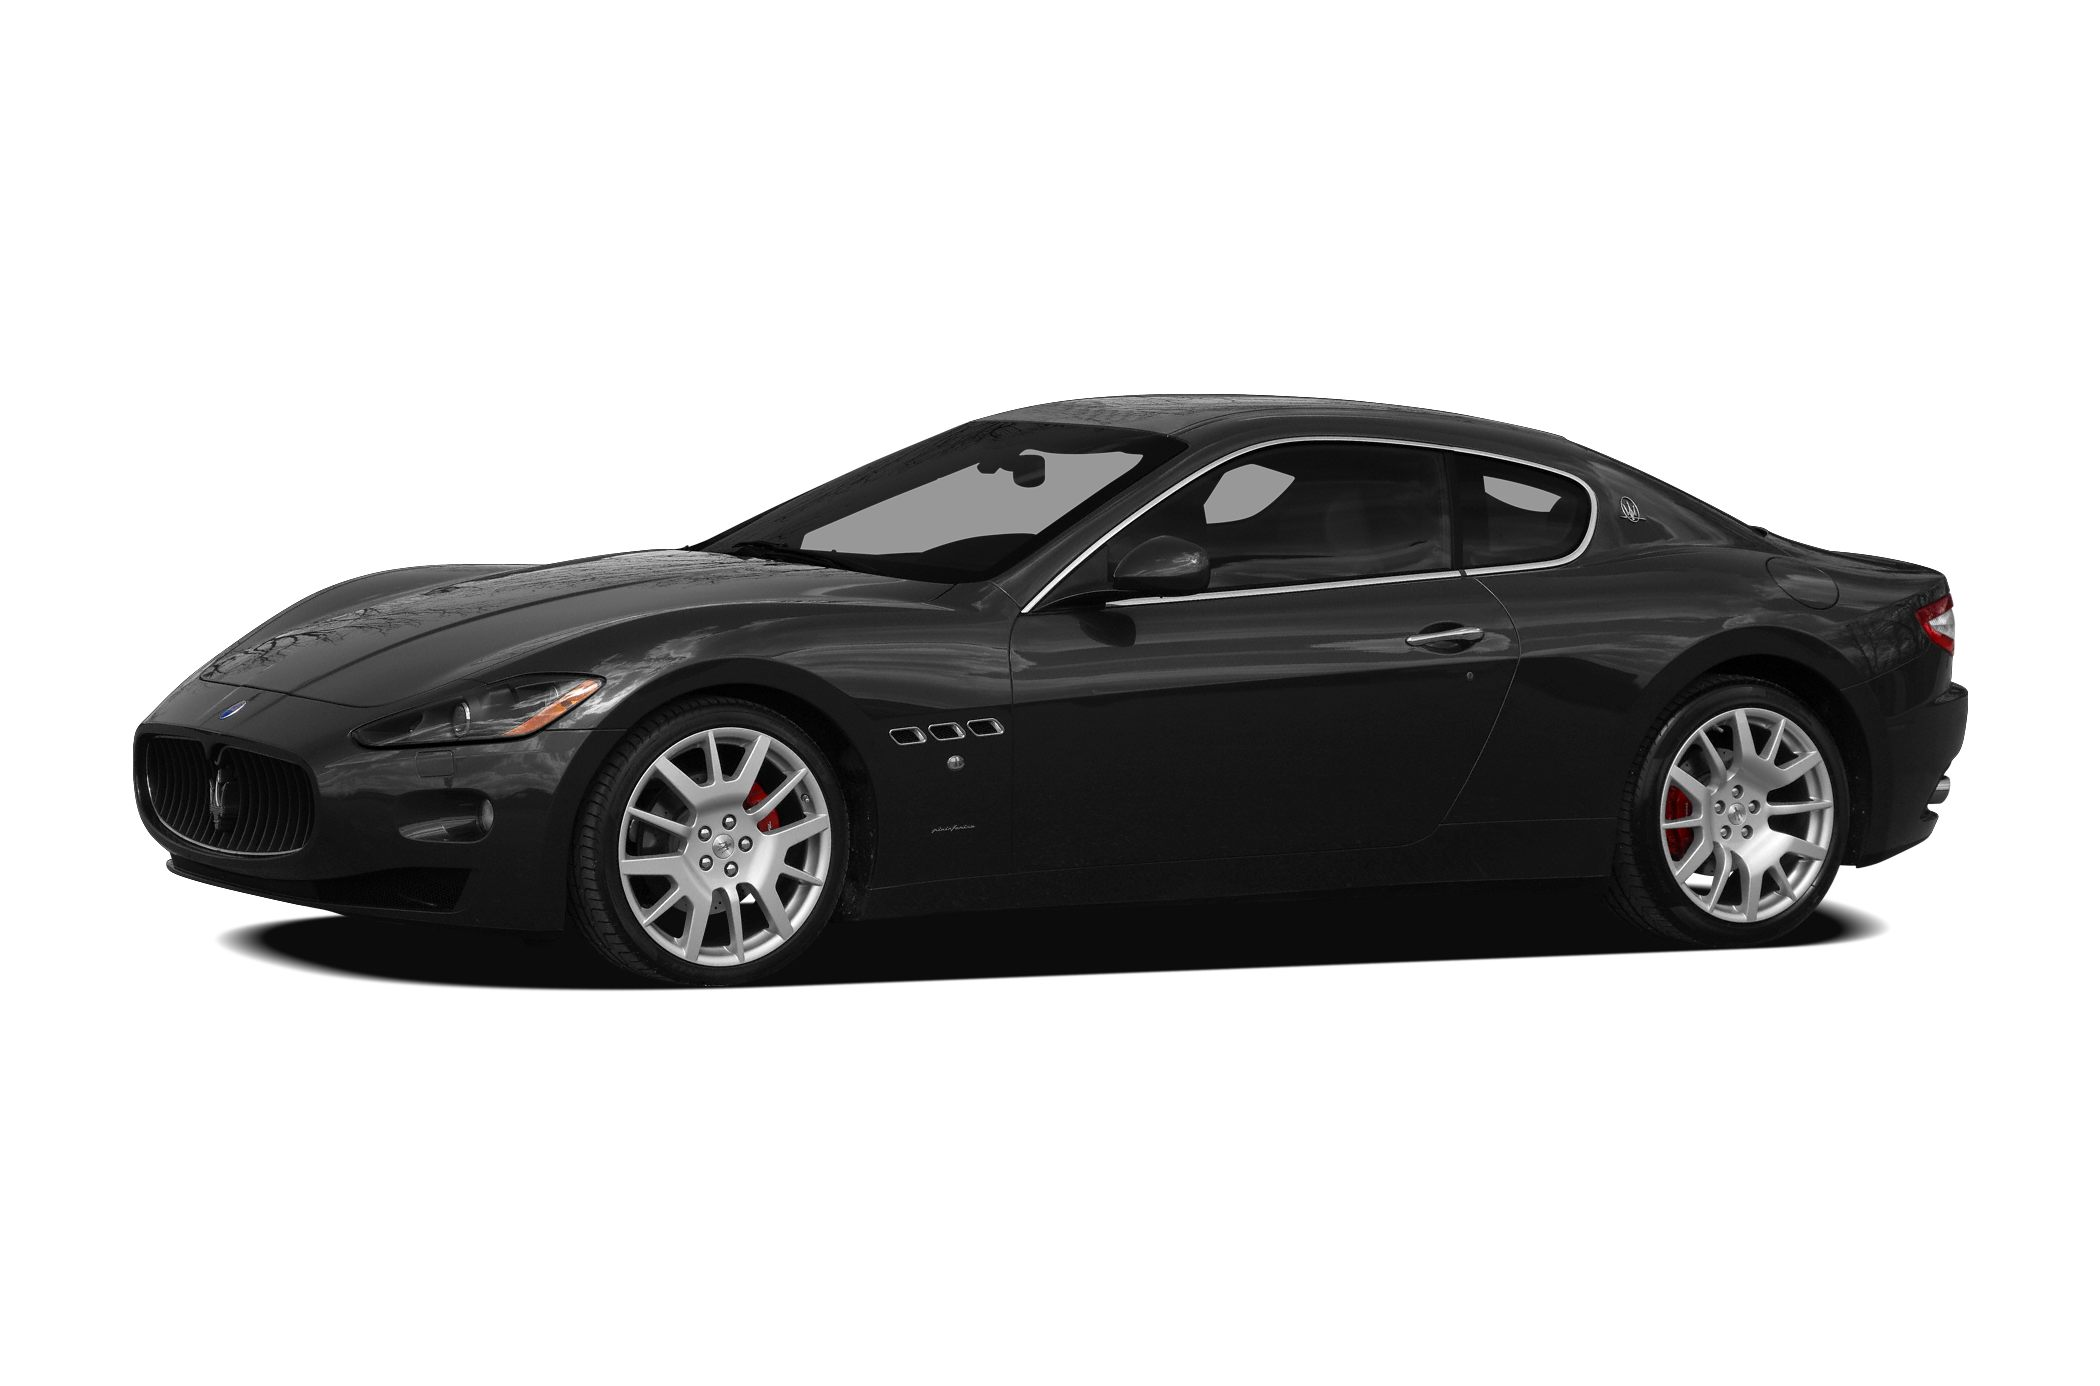 2009 Maserati GranTurismo